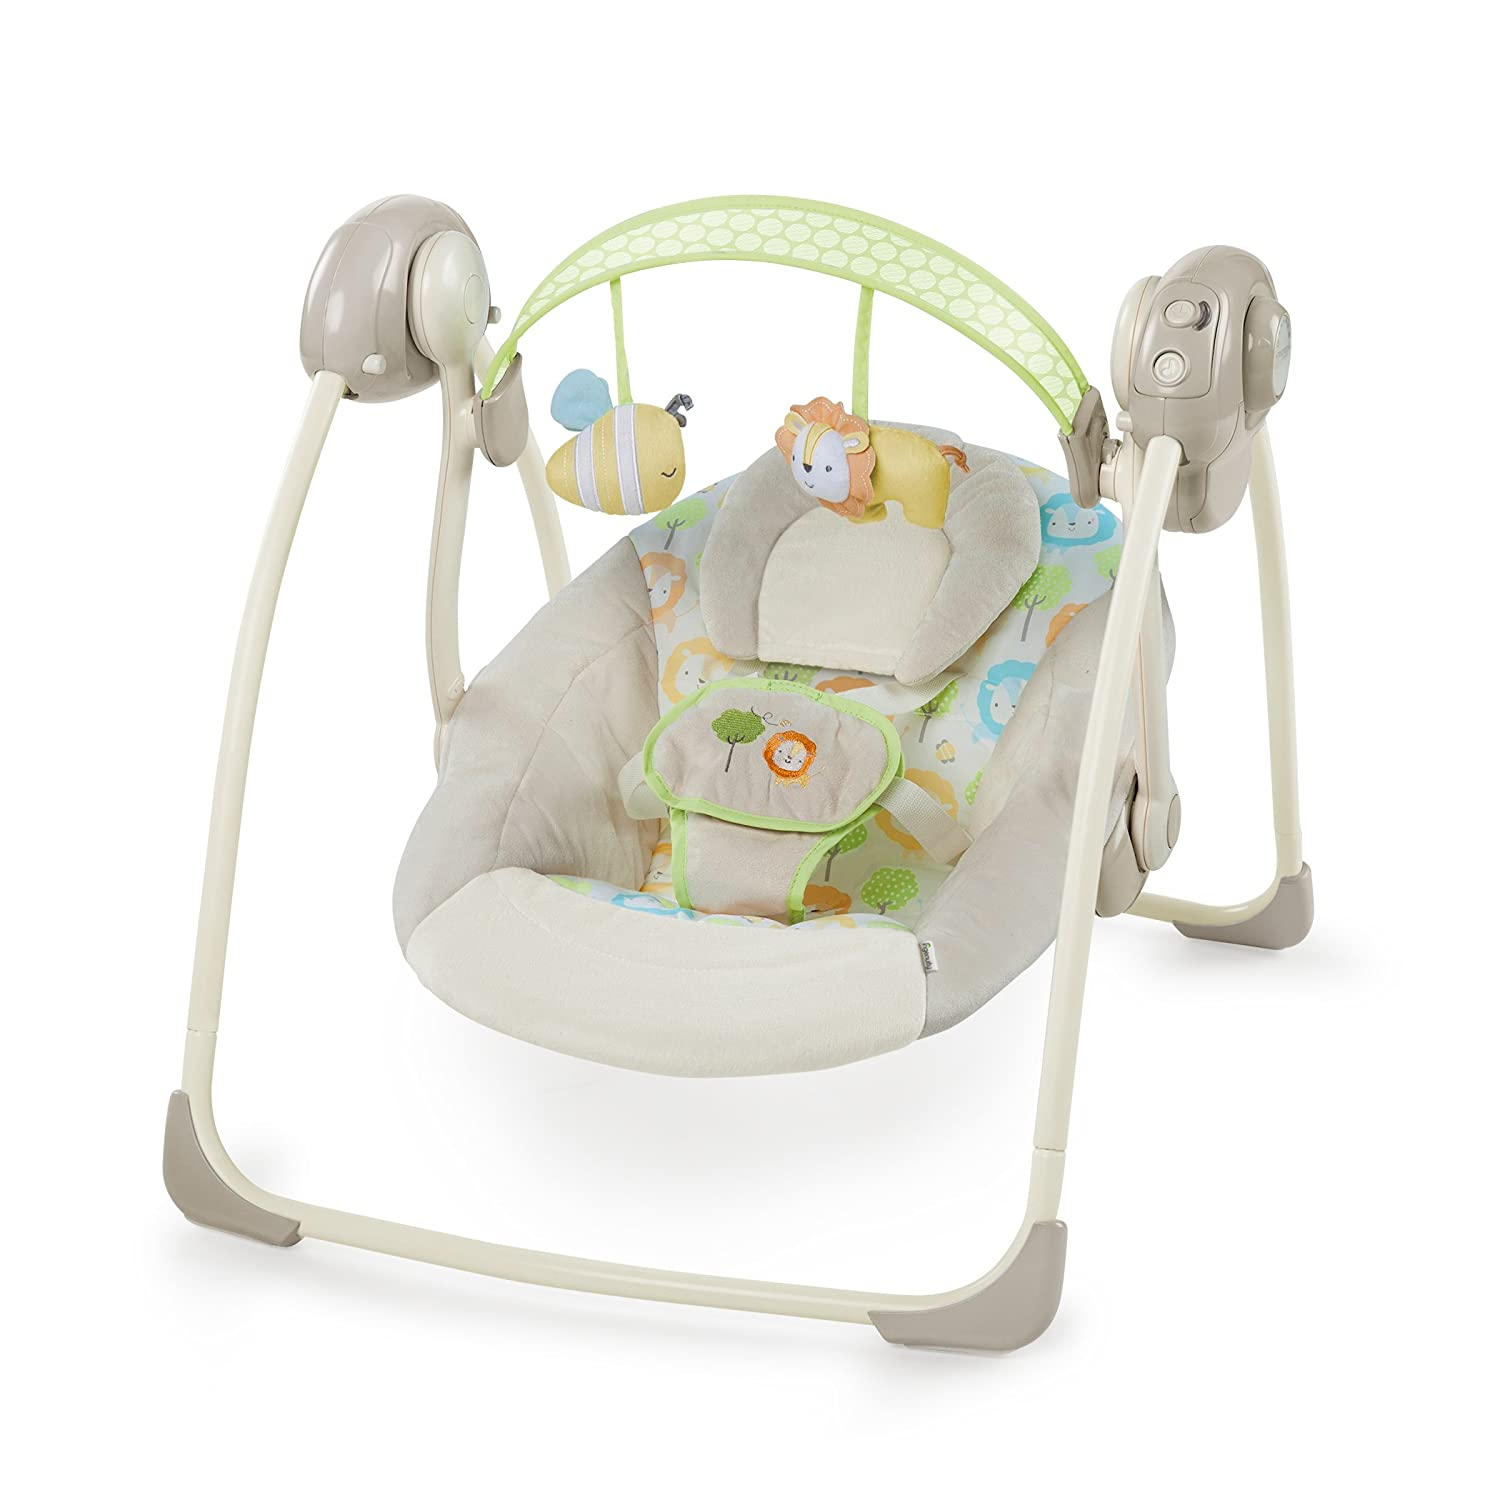 Ingenuity SooThe 'n Delight Portable Swing, Sunny Snuggles Kids II 10248